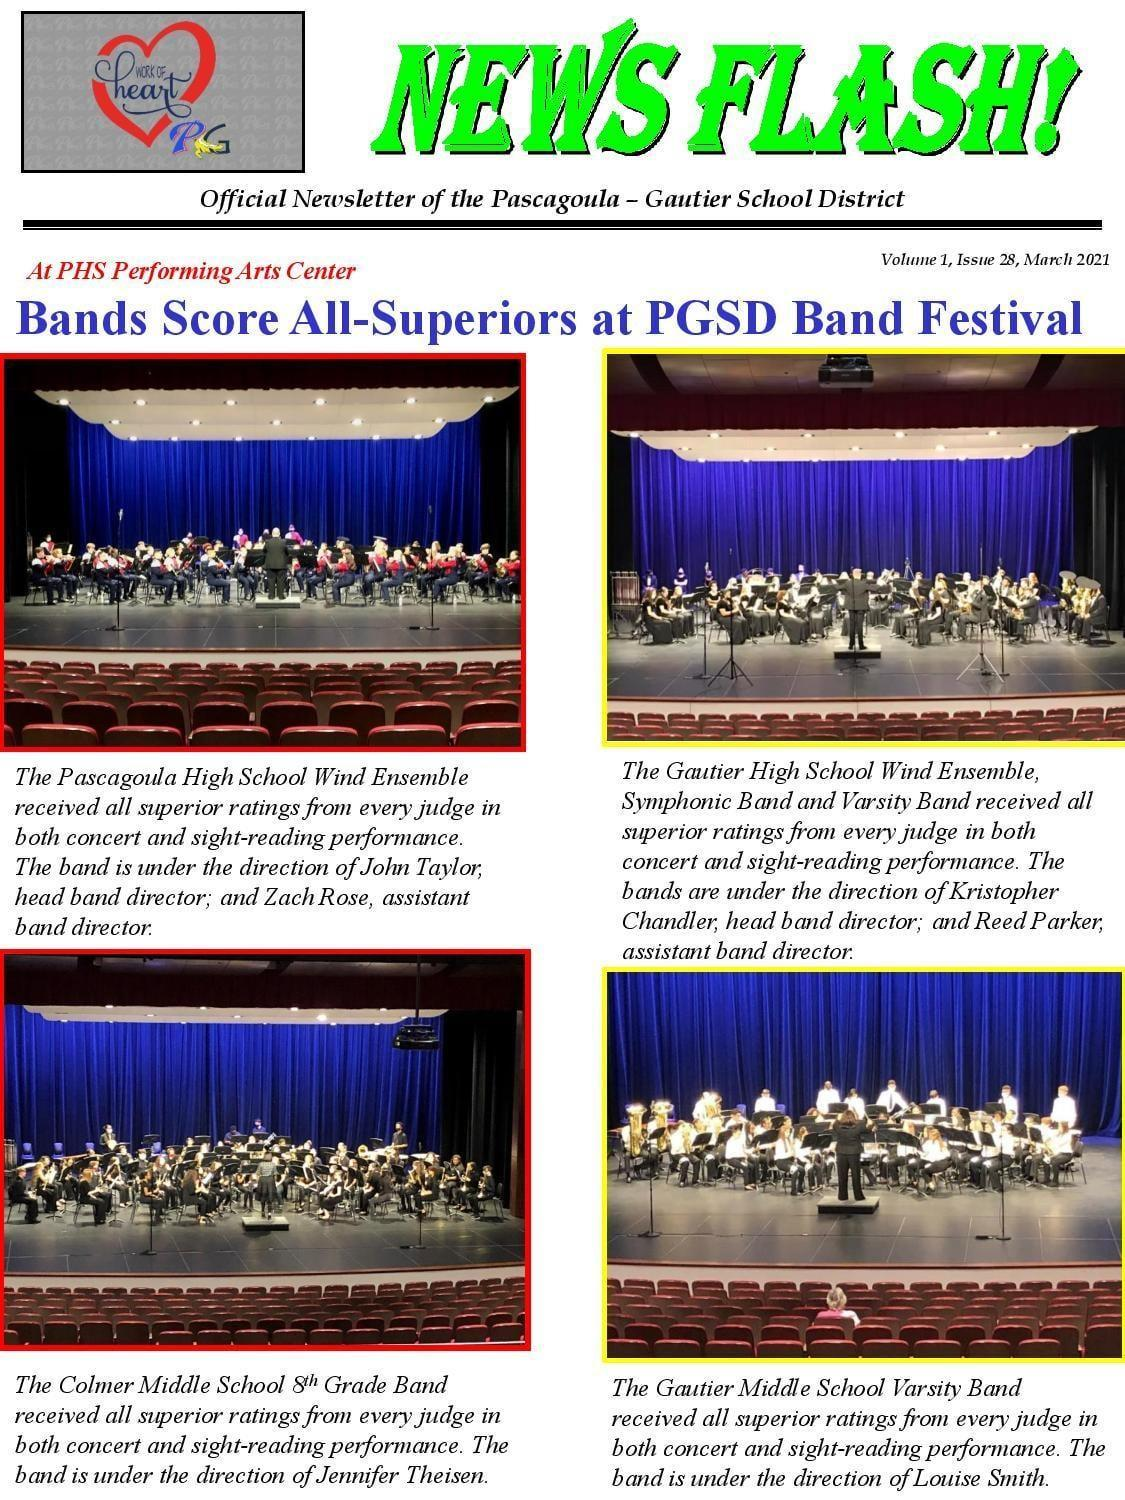 PGSD Bands Score All Superiors